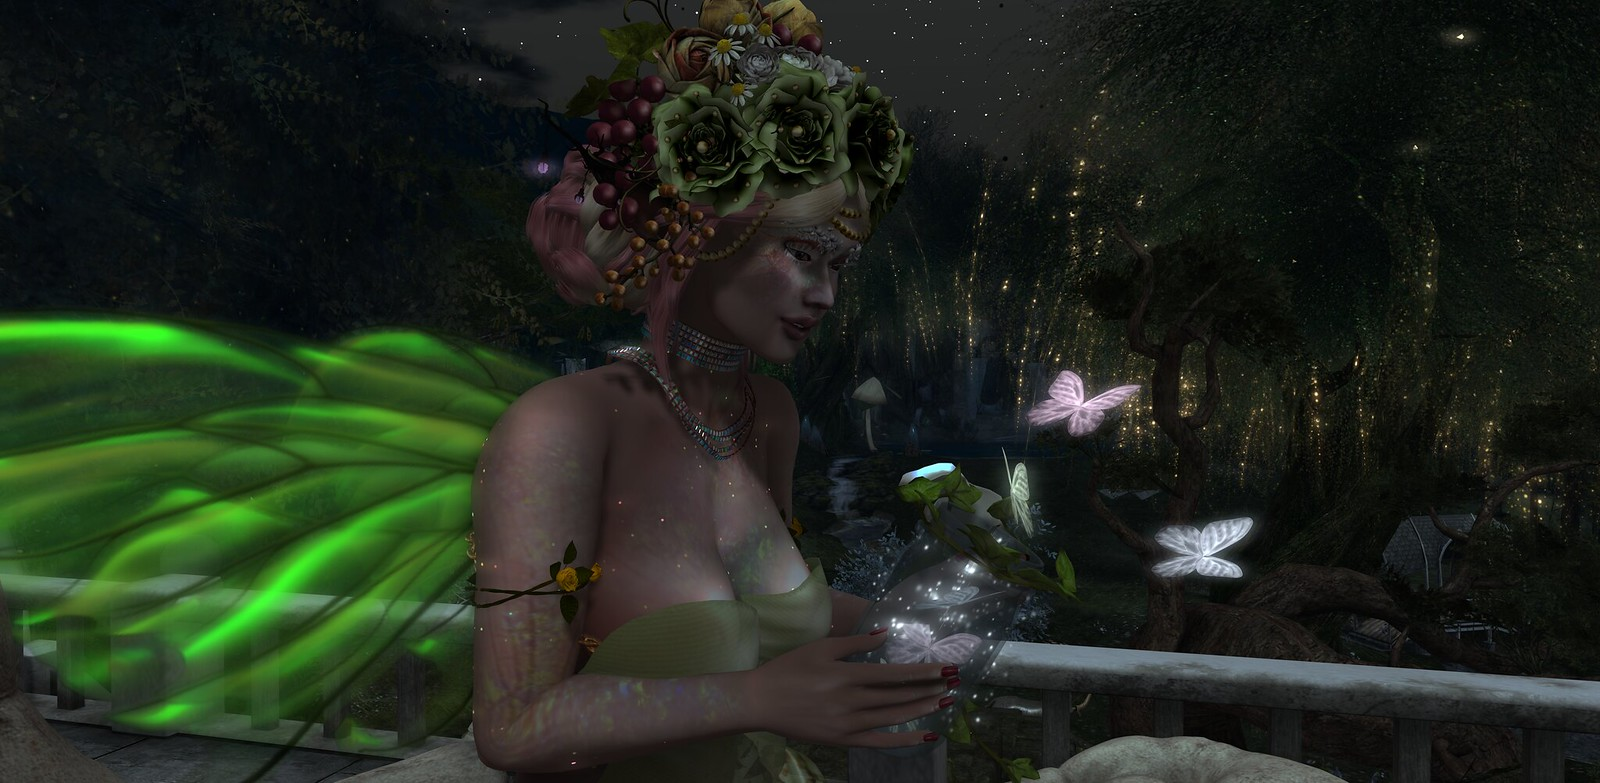 Pic of Faerie Prettyflower Vale and her magical butterfly jar